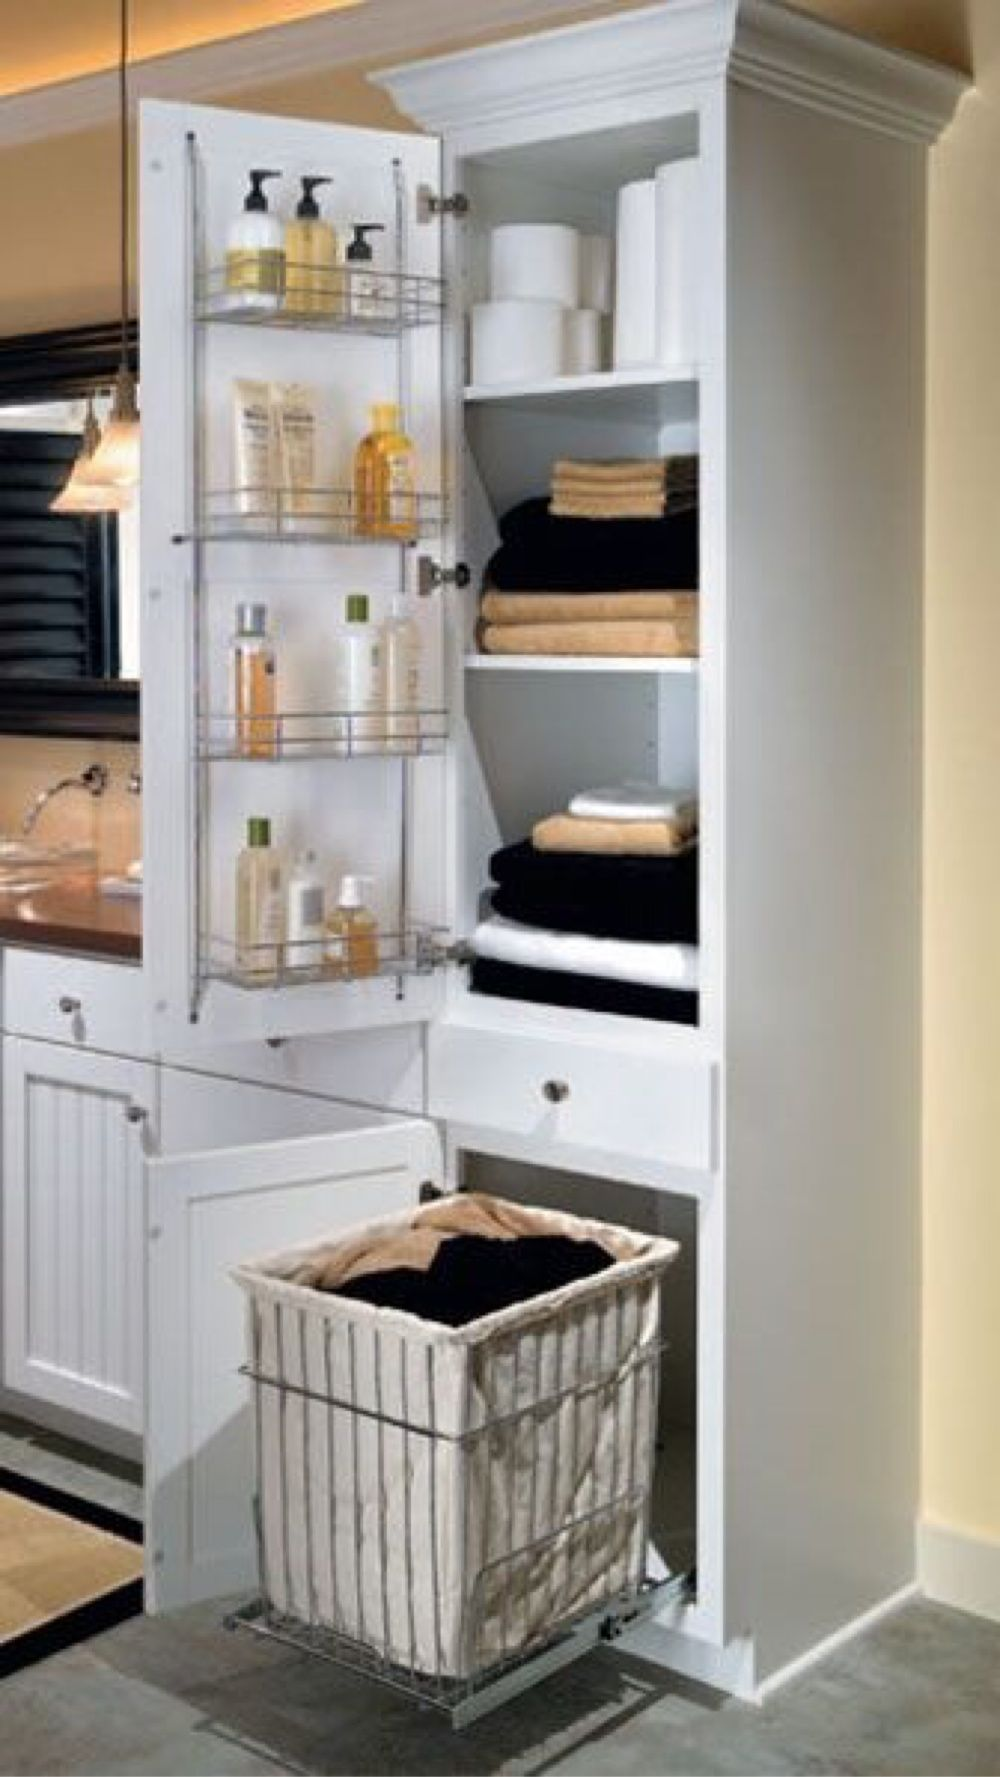 Bathroom cabinet with built in laundry hamper - Linen Closet With Chrome Shelving Rack On Door And A Removable Pullout Hamper Laundry Basketslaundry Roomlaundry Cabinetslaundry